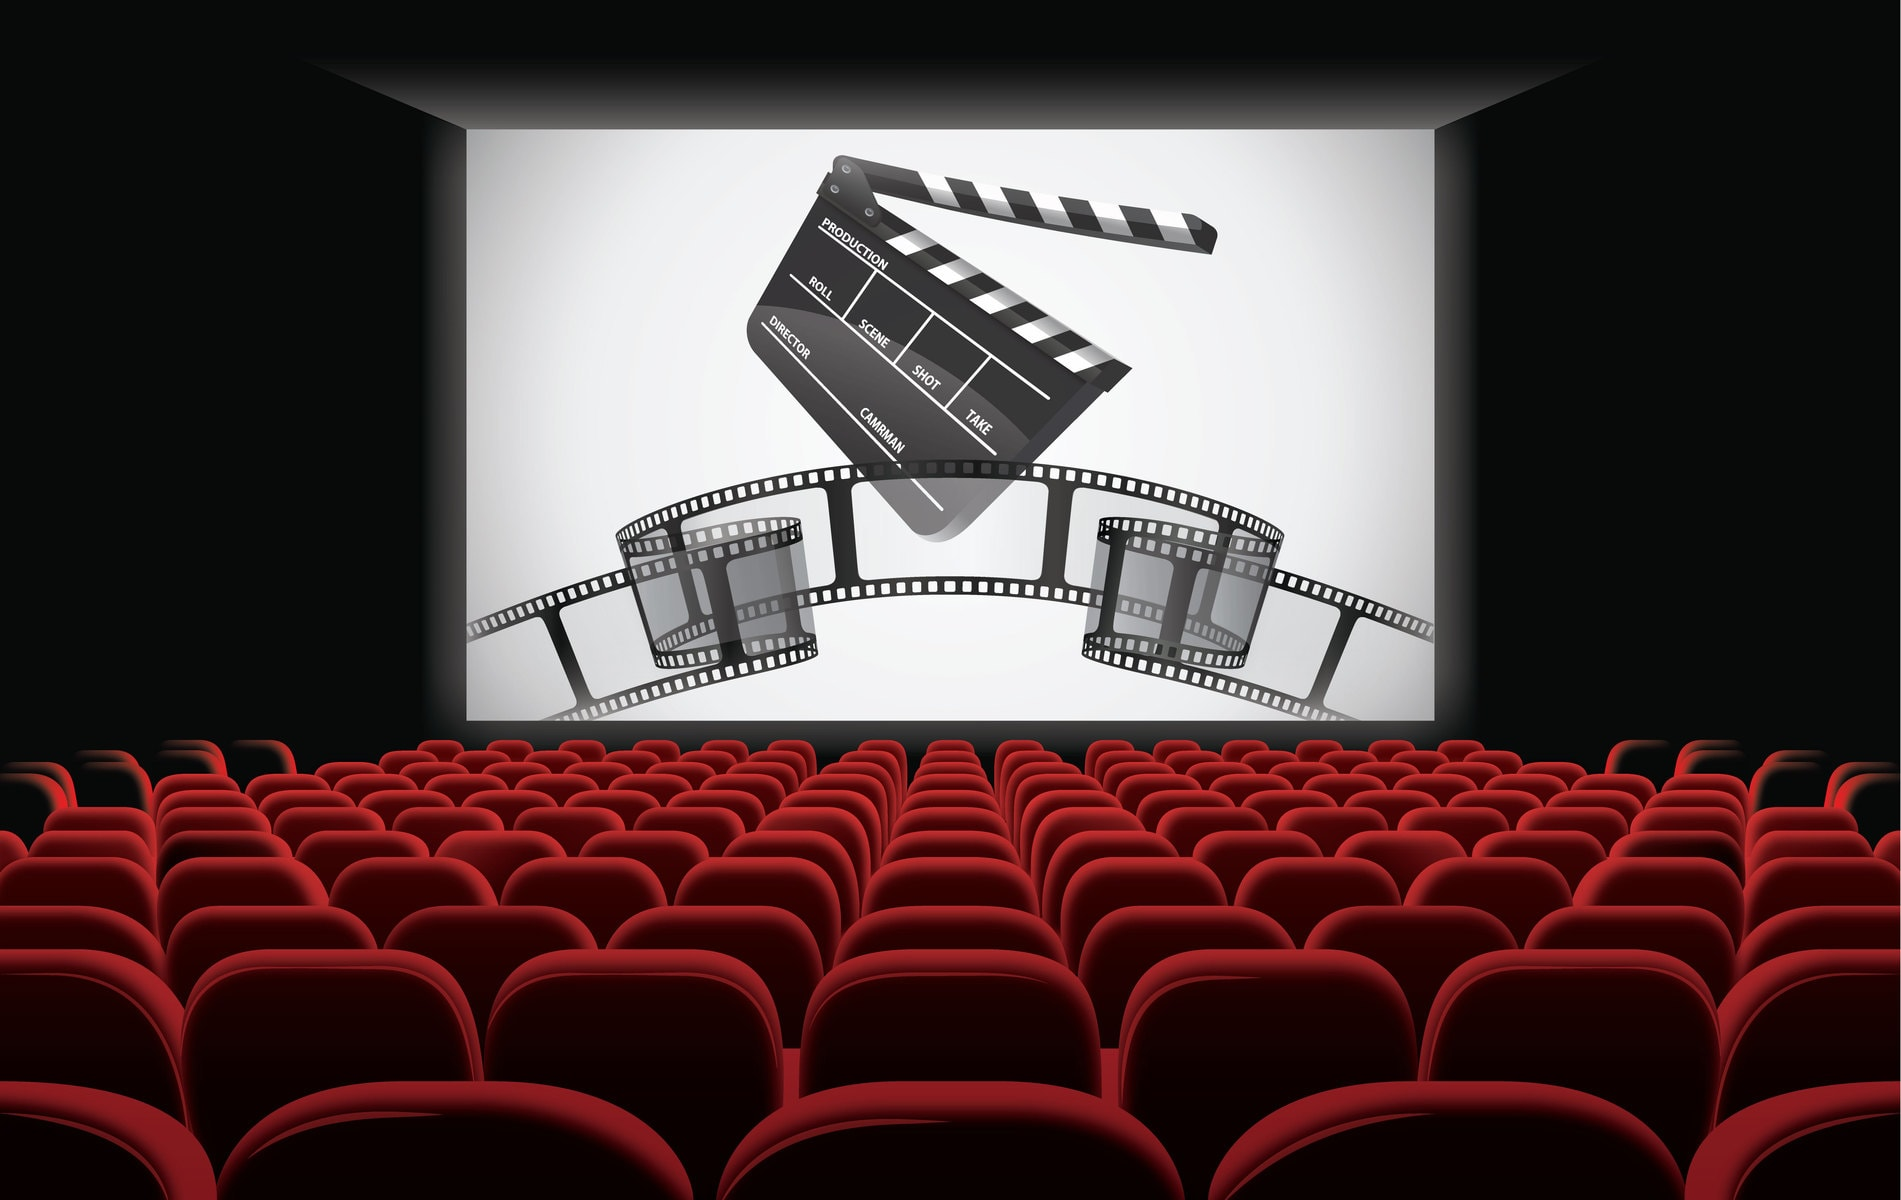 International-Union-of-Cinemas-Calls-for-Open-Standards-in-the-Cinema-Industry[1]